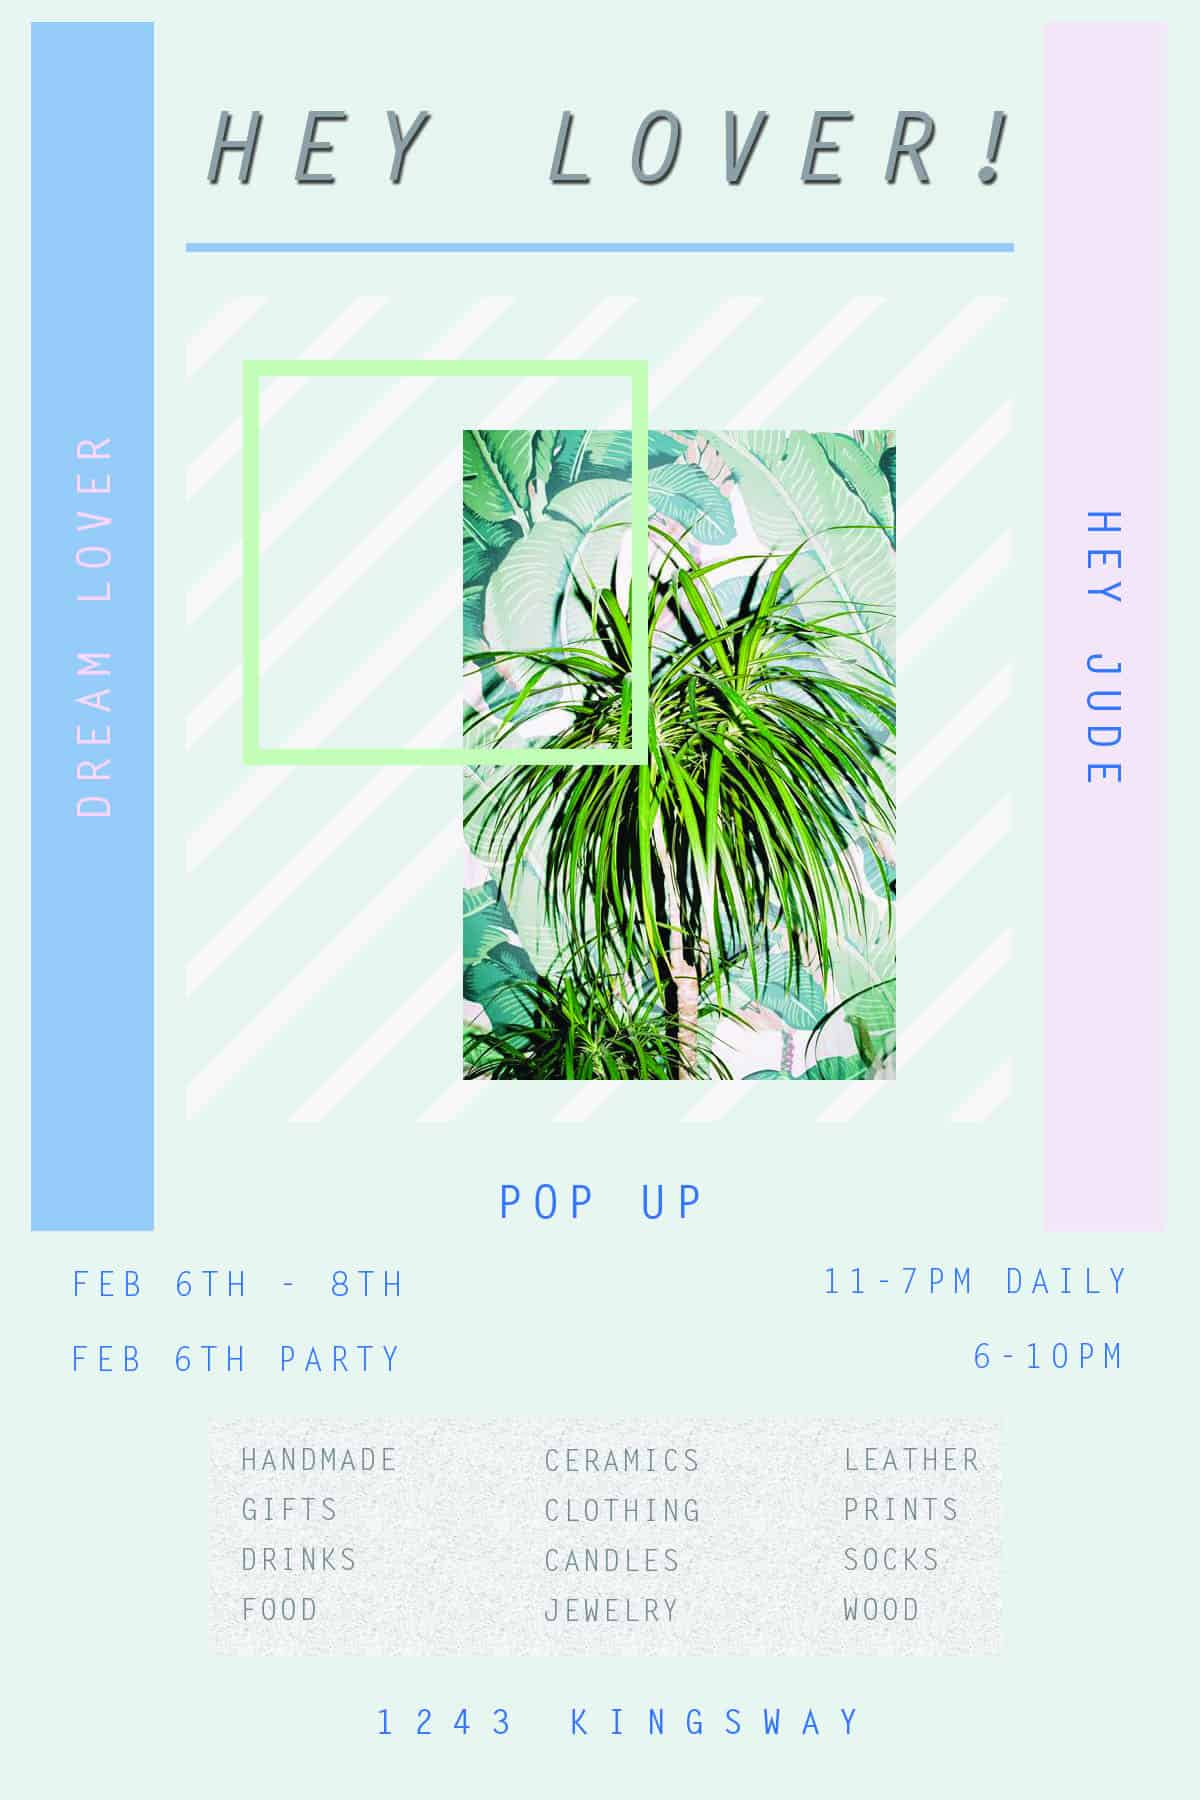 Hey Lover! Pop-Up Shop This Weekend